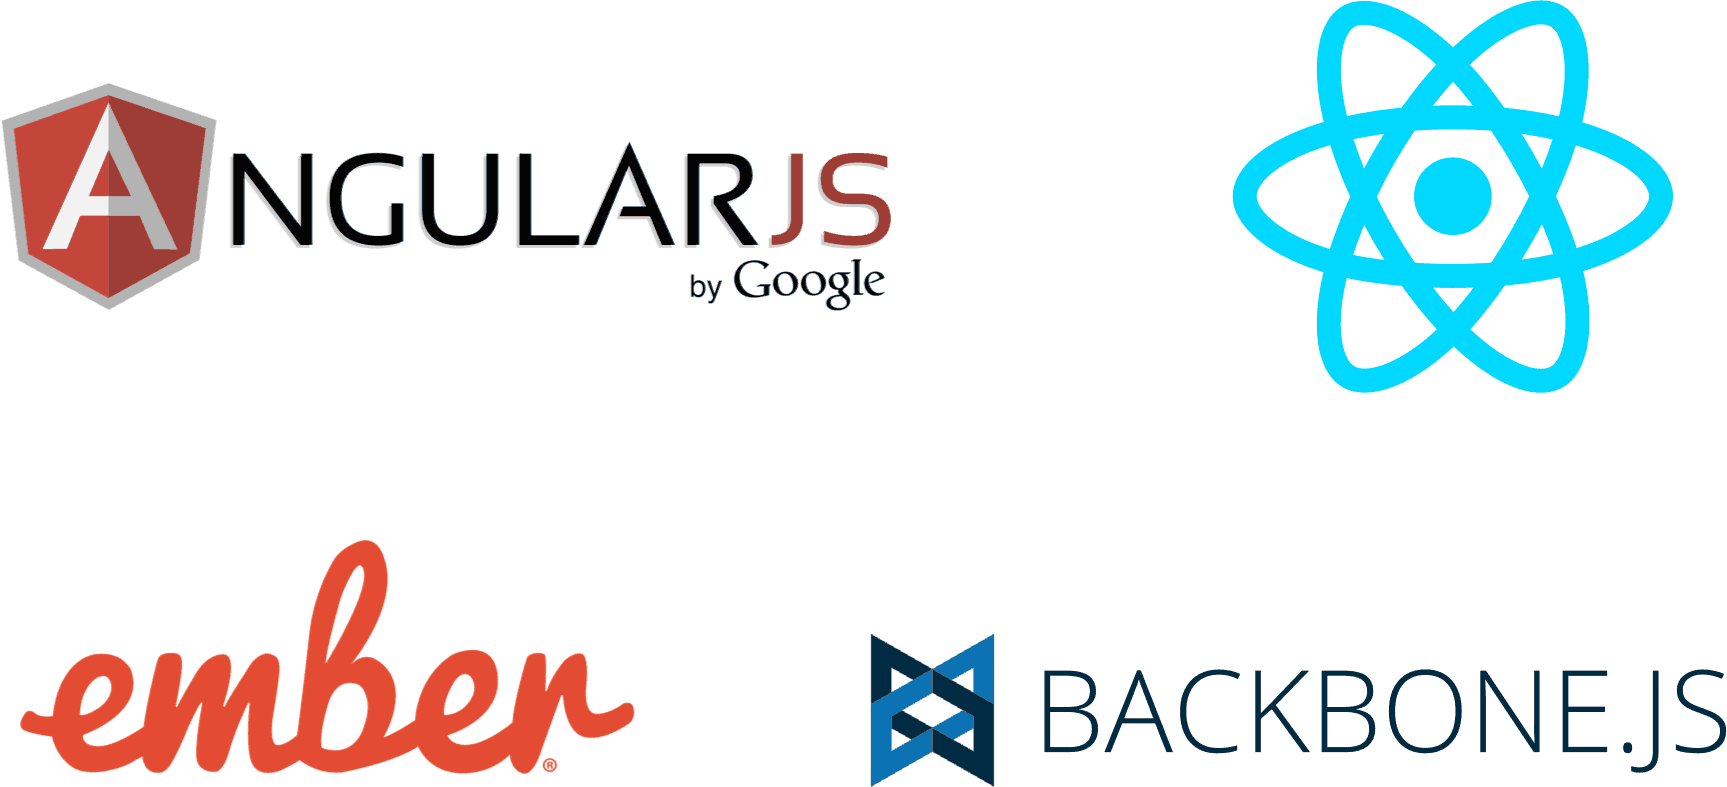 Logos of popular JavaScript frameworks